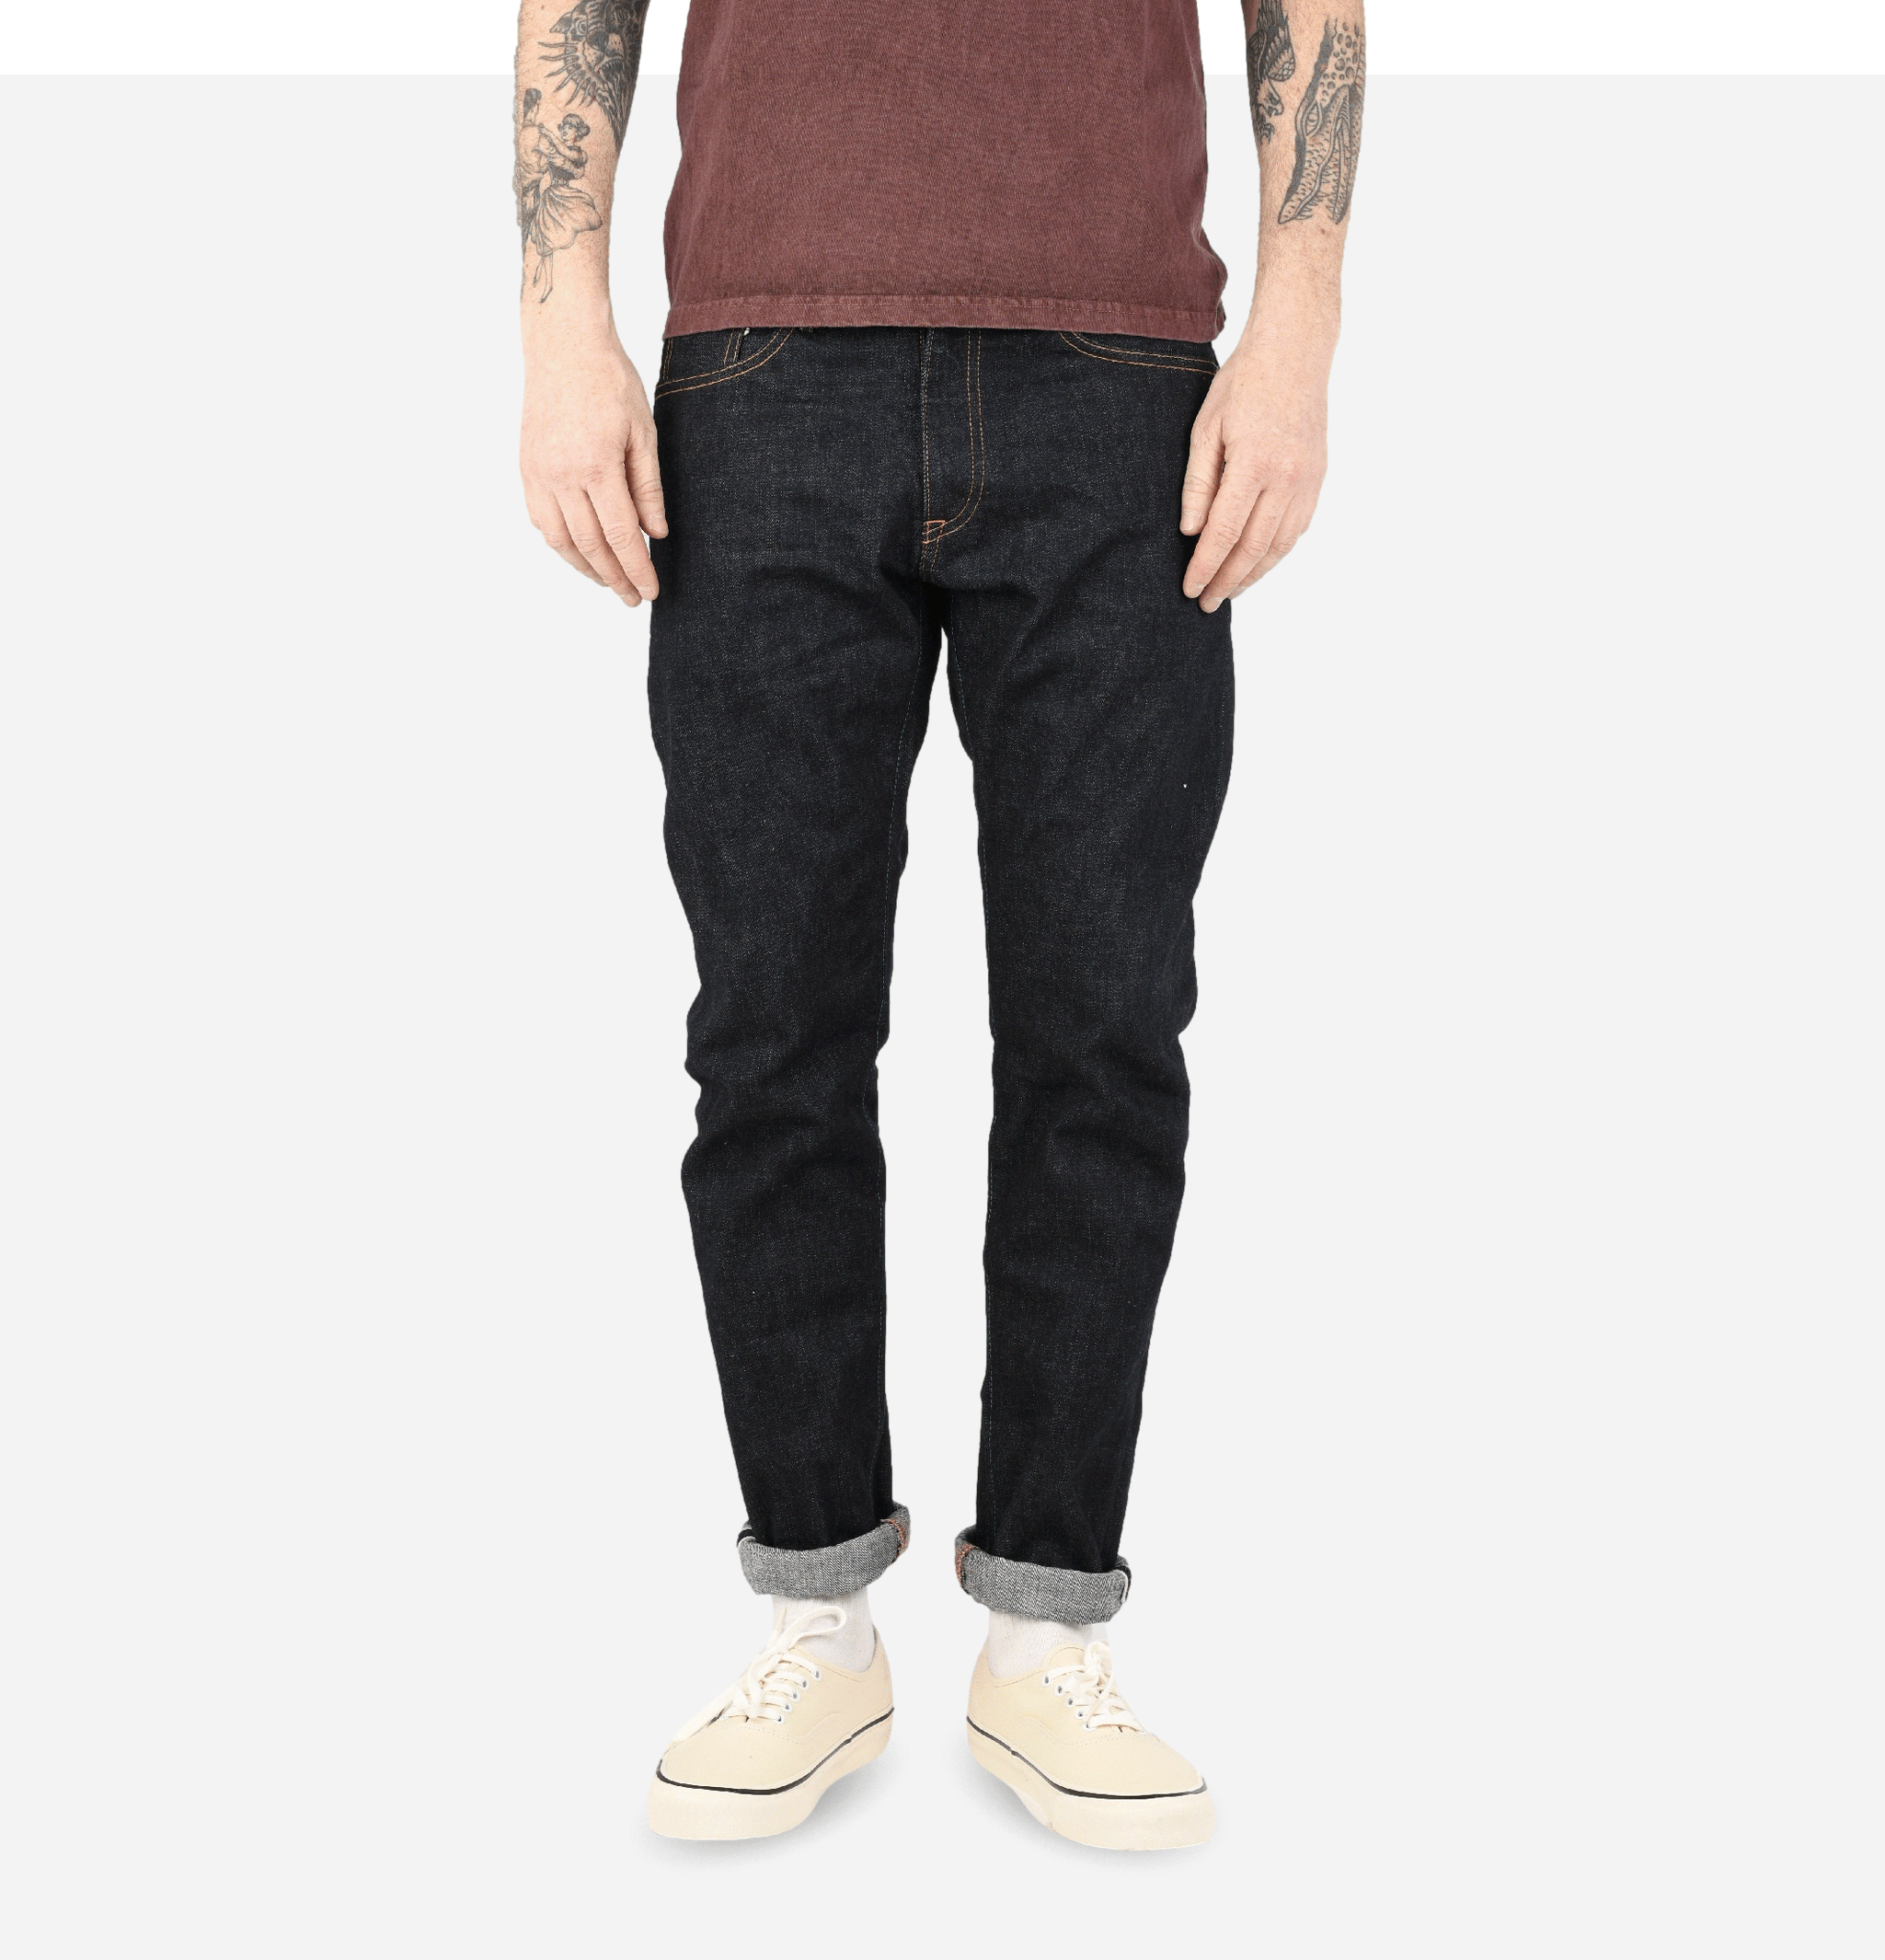 201 Tapered Jeans14.8 US...